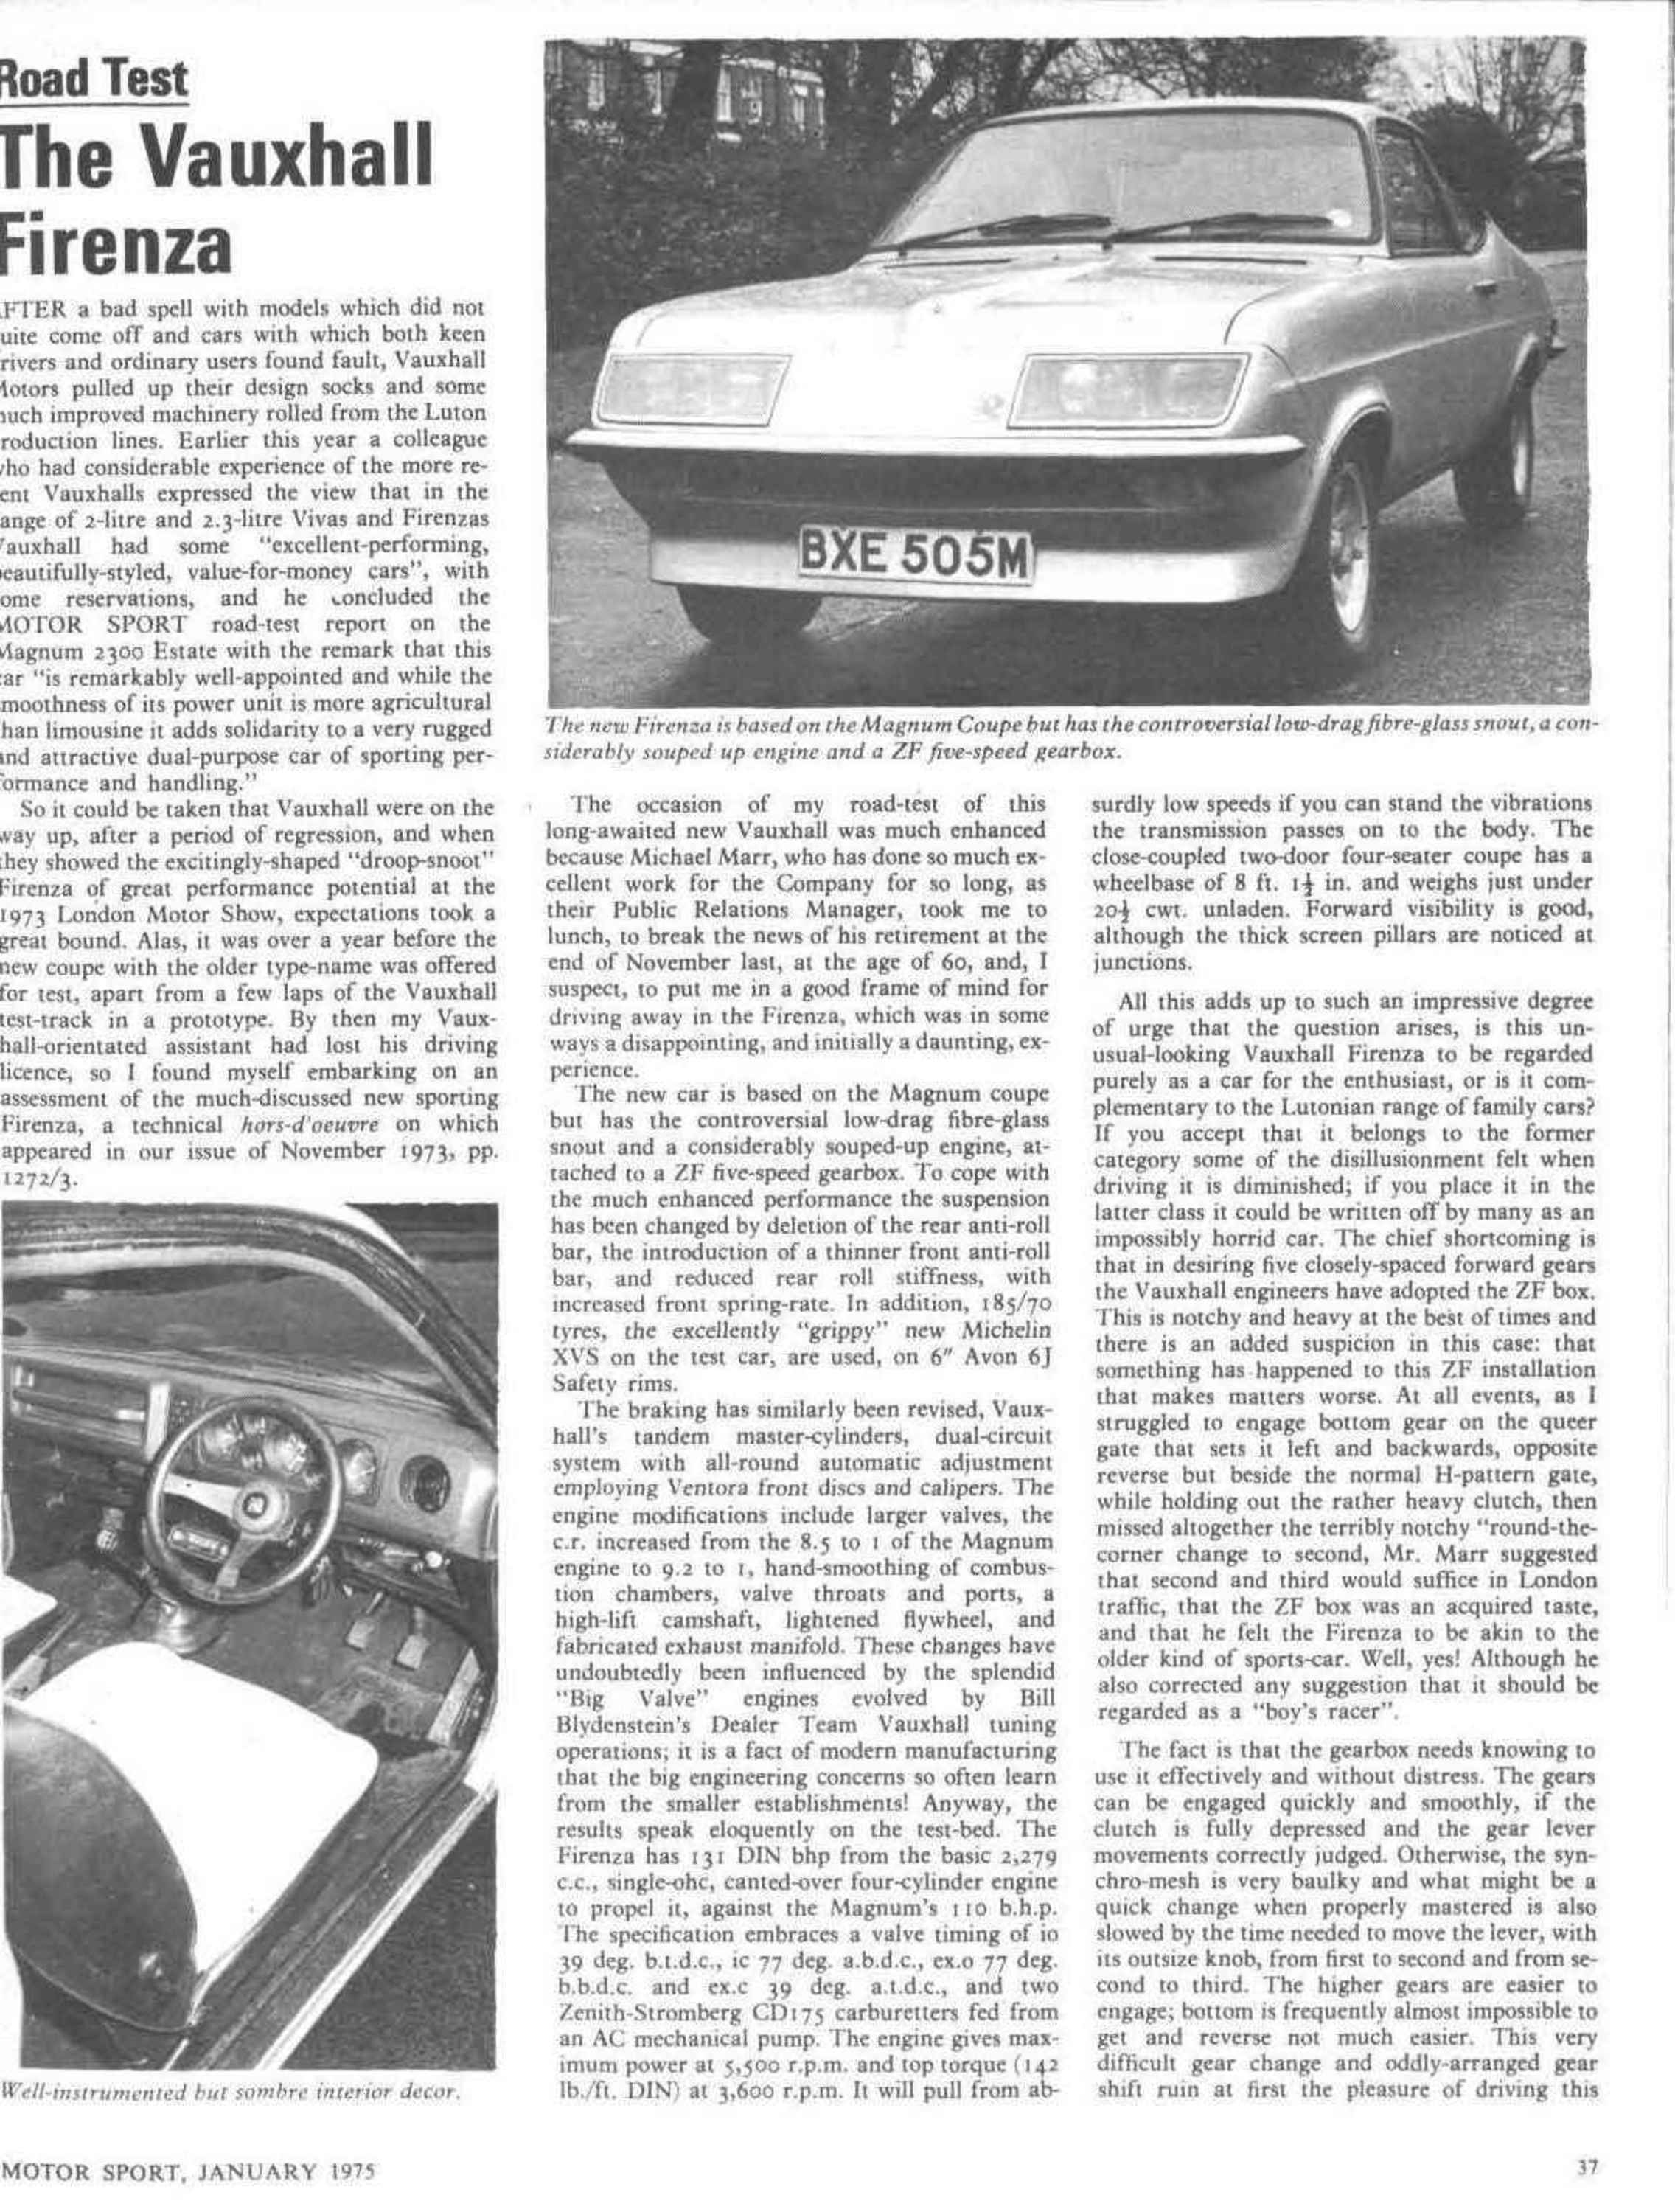 road test the vauxhall firenza image